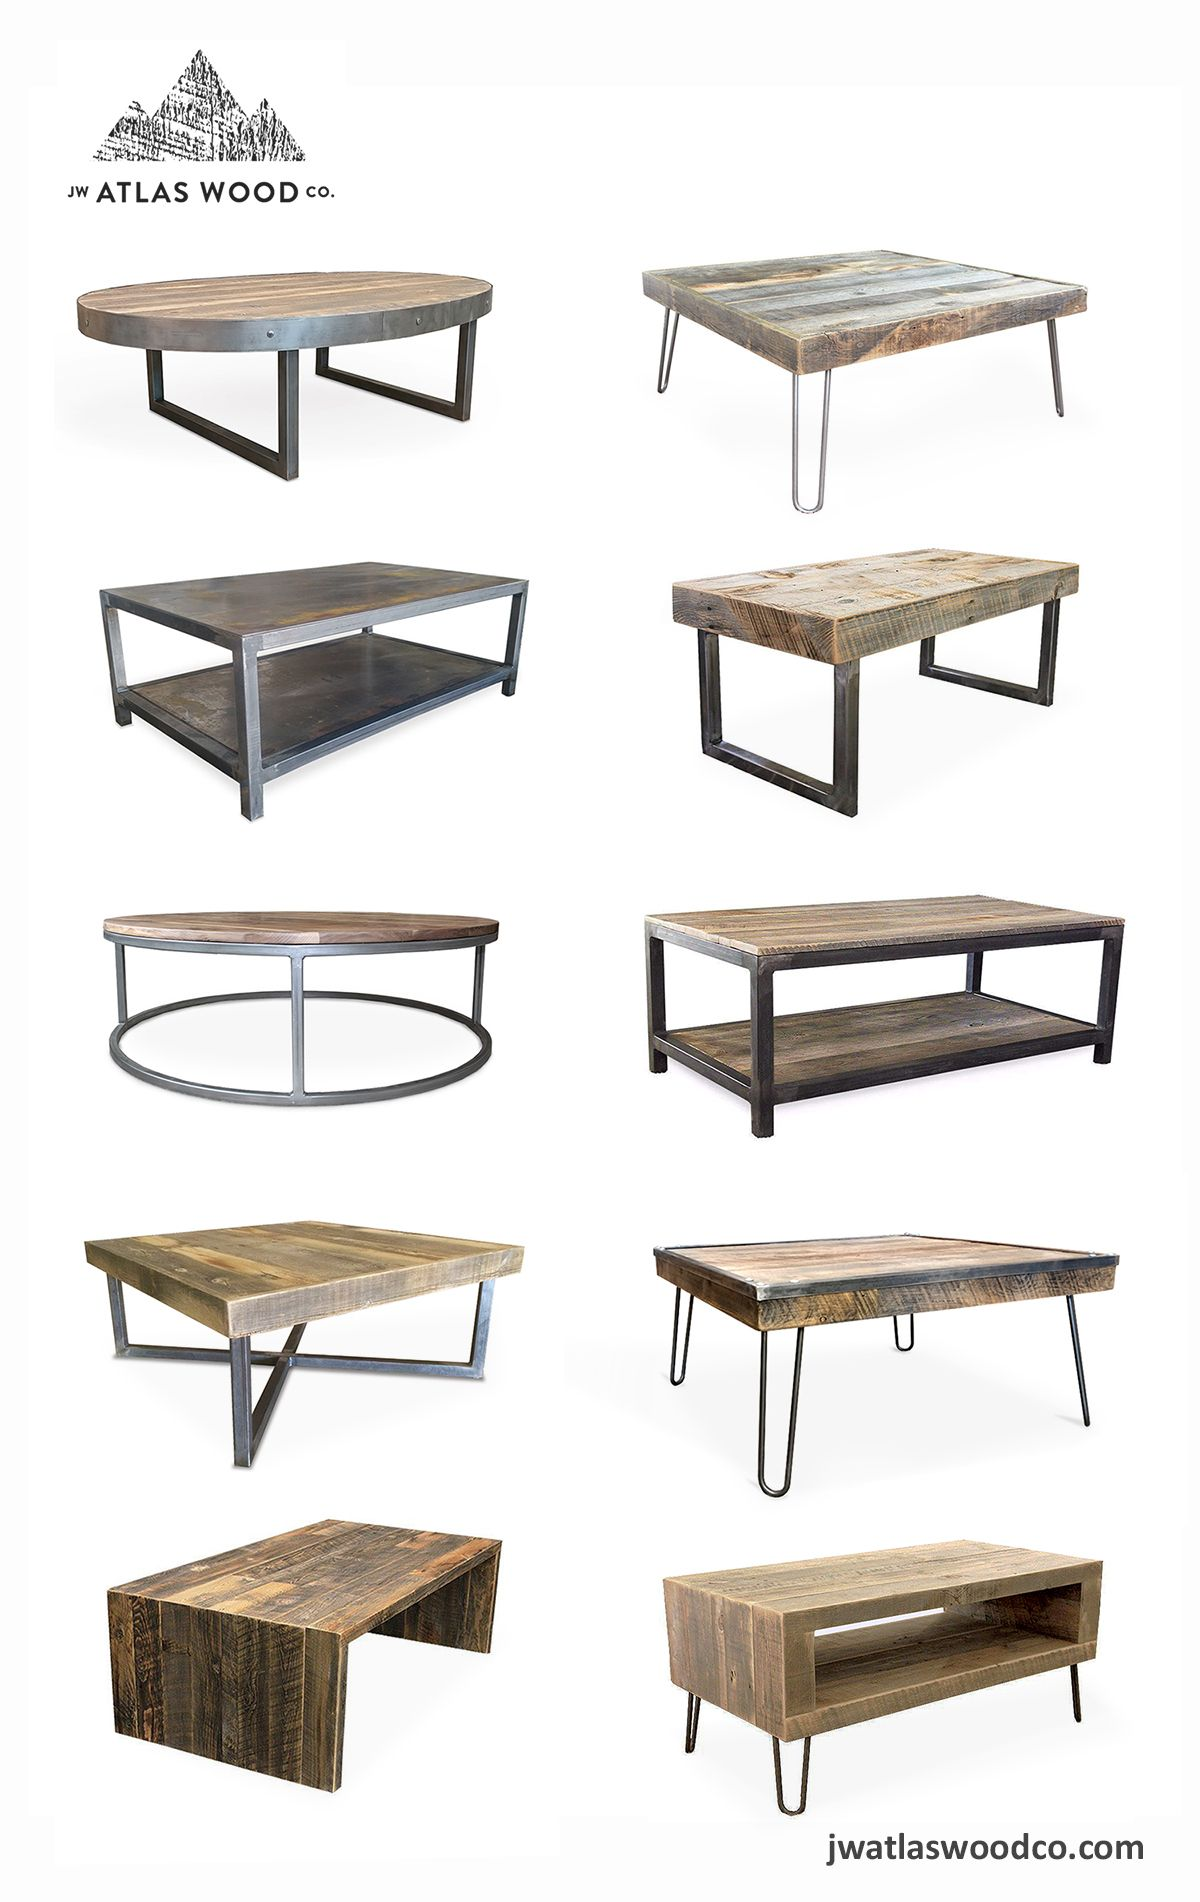 Coffee Table Ideas From Jw Atlas Wood Co Mid Century Contemporary Industrial Rustic Modern Coffee Tables Co Contemporary Coffee Table Modern Coffee Tables Convertible Coffee Table [ 1902 x 1200 Pixel ]